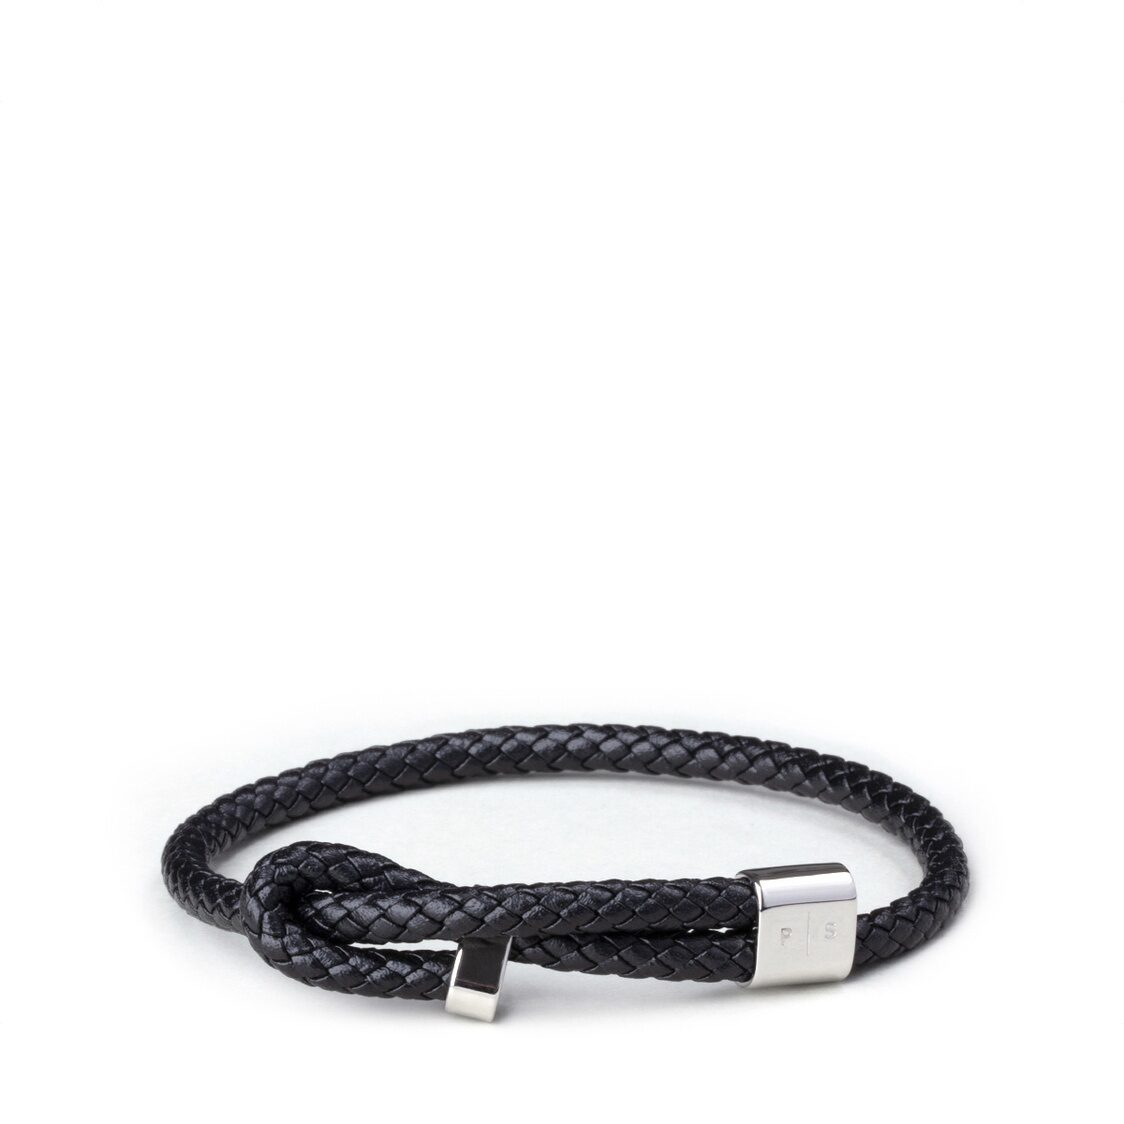 Wve Bracelet - Black Leather